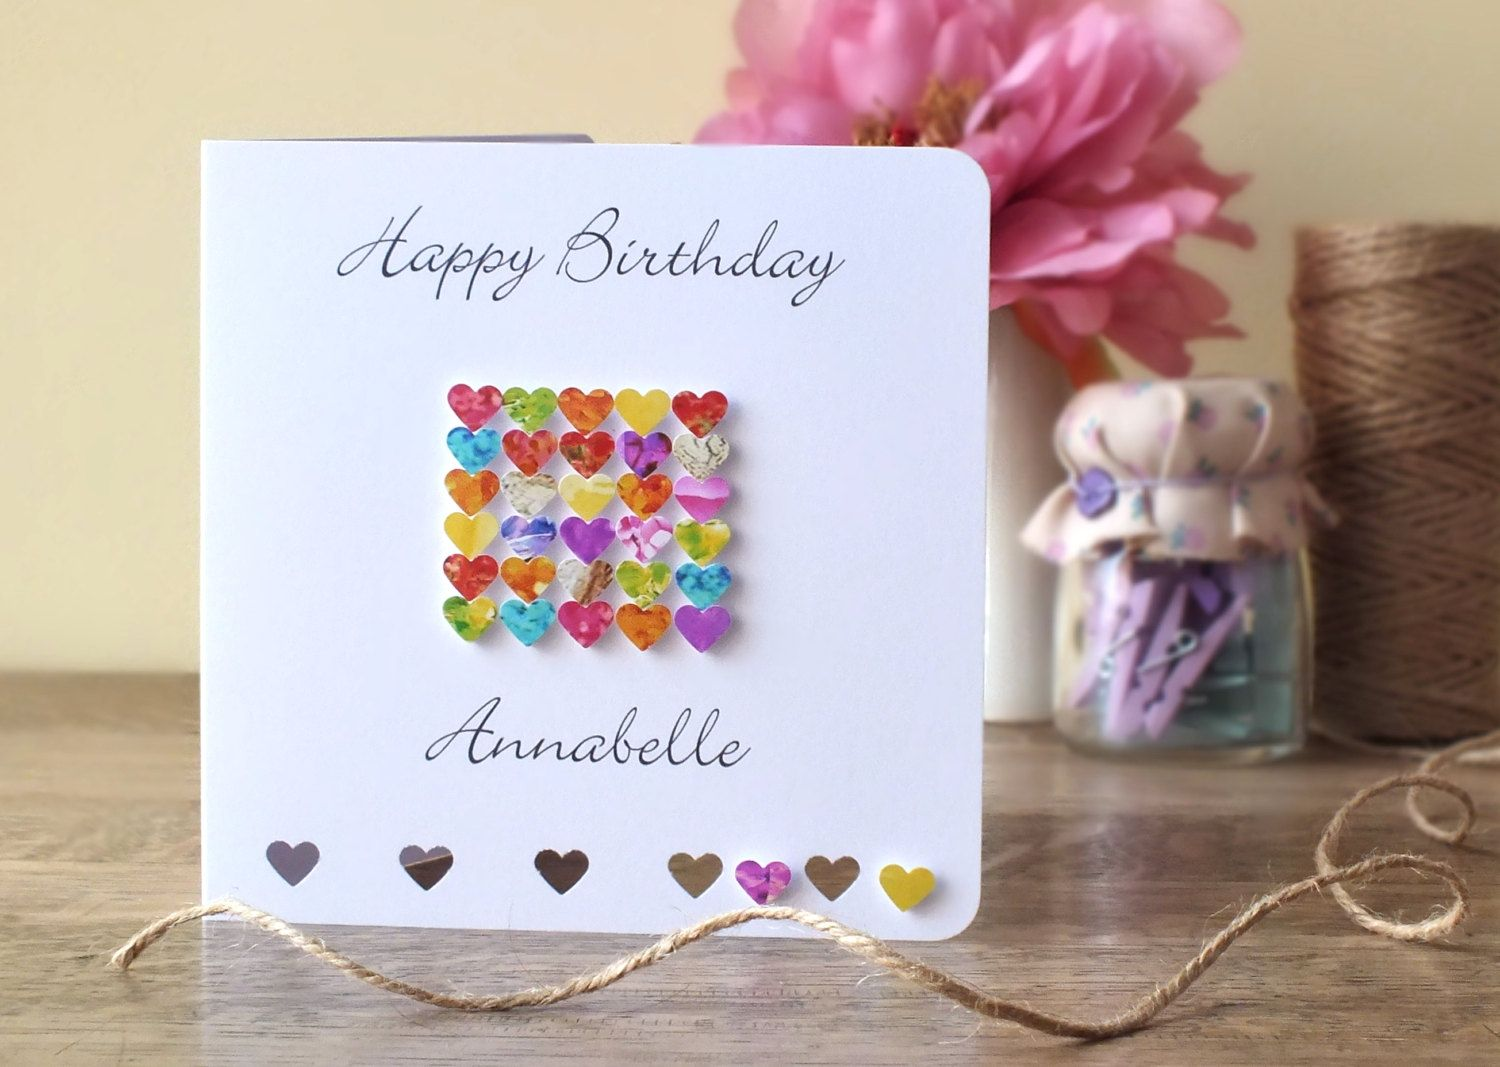 Handmade Personalised Birthday Card